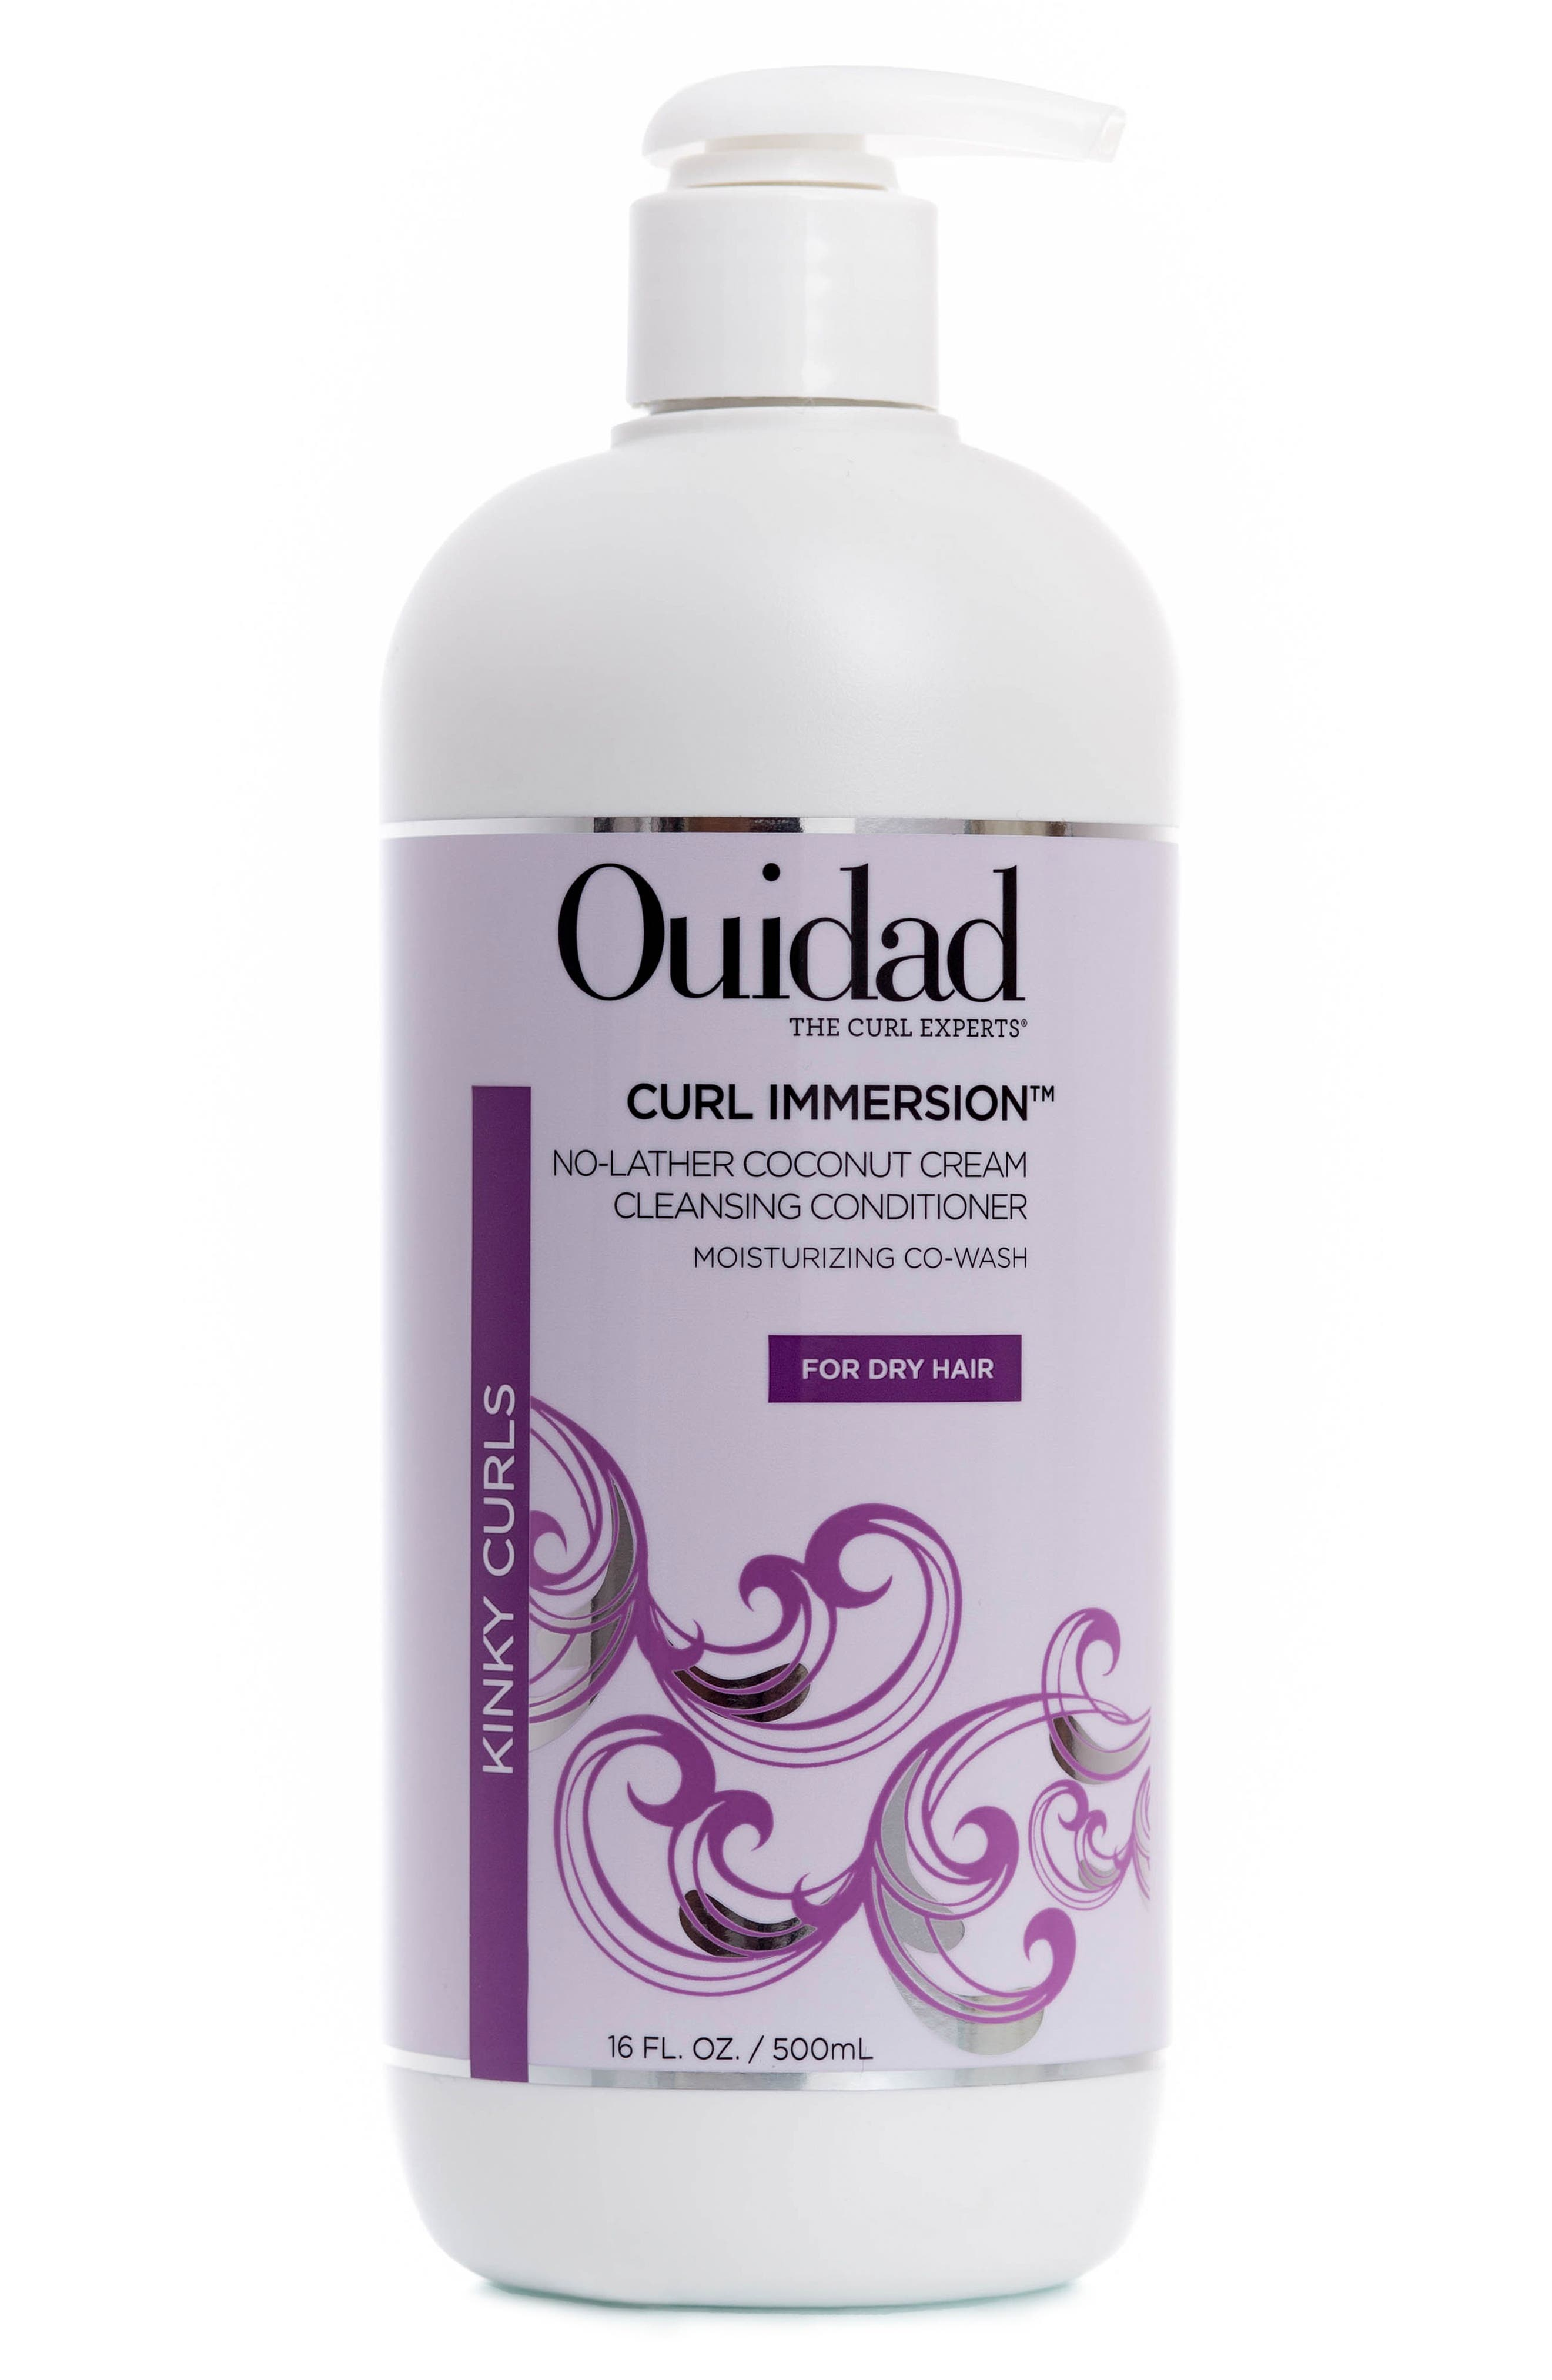 OUIDAD,                             Curl Immersion<sup>™</sup> No-Lather Coconut Cream Cleansing Conditioner,                             Main thumbnail 1, color,                             000